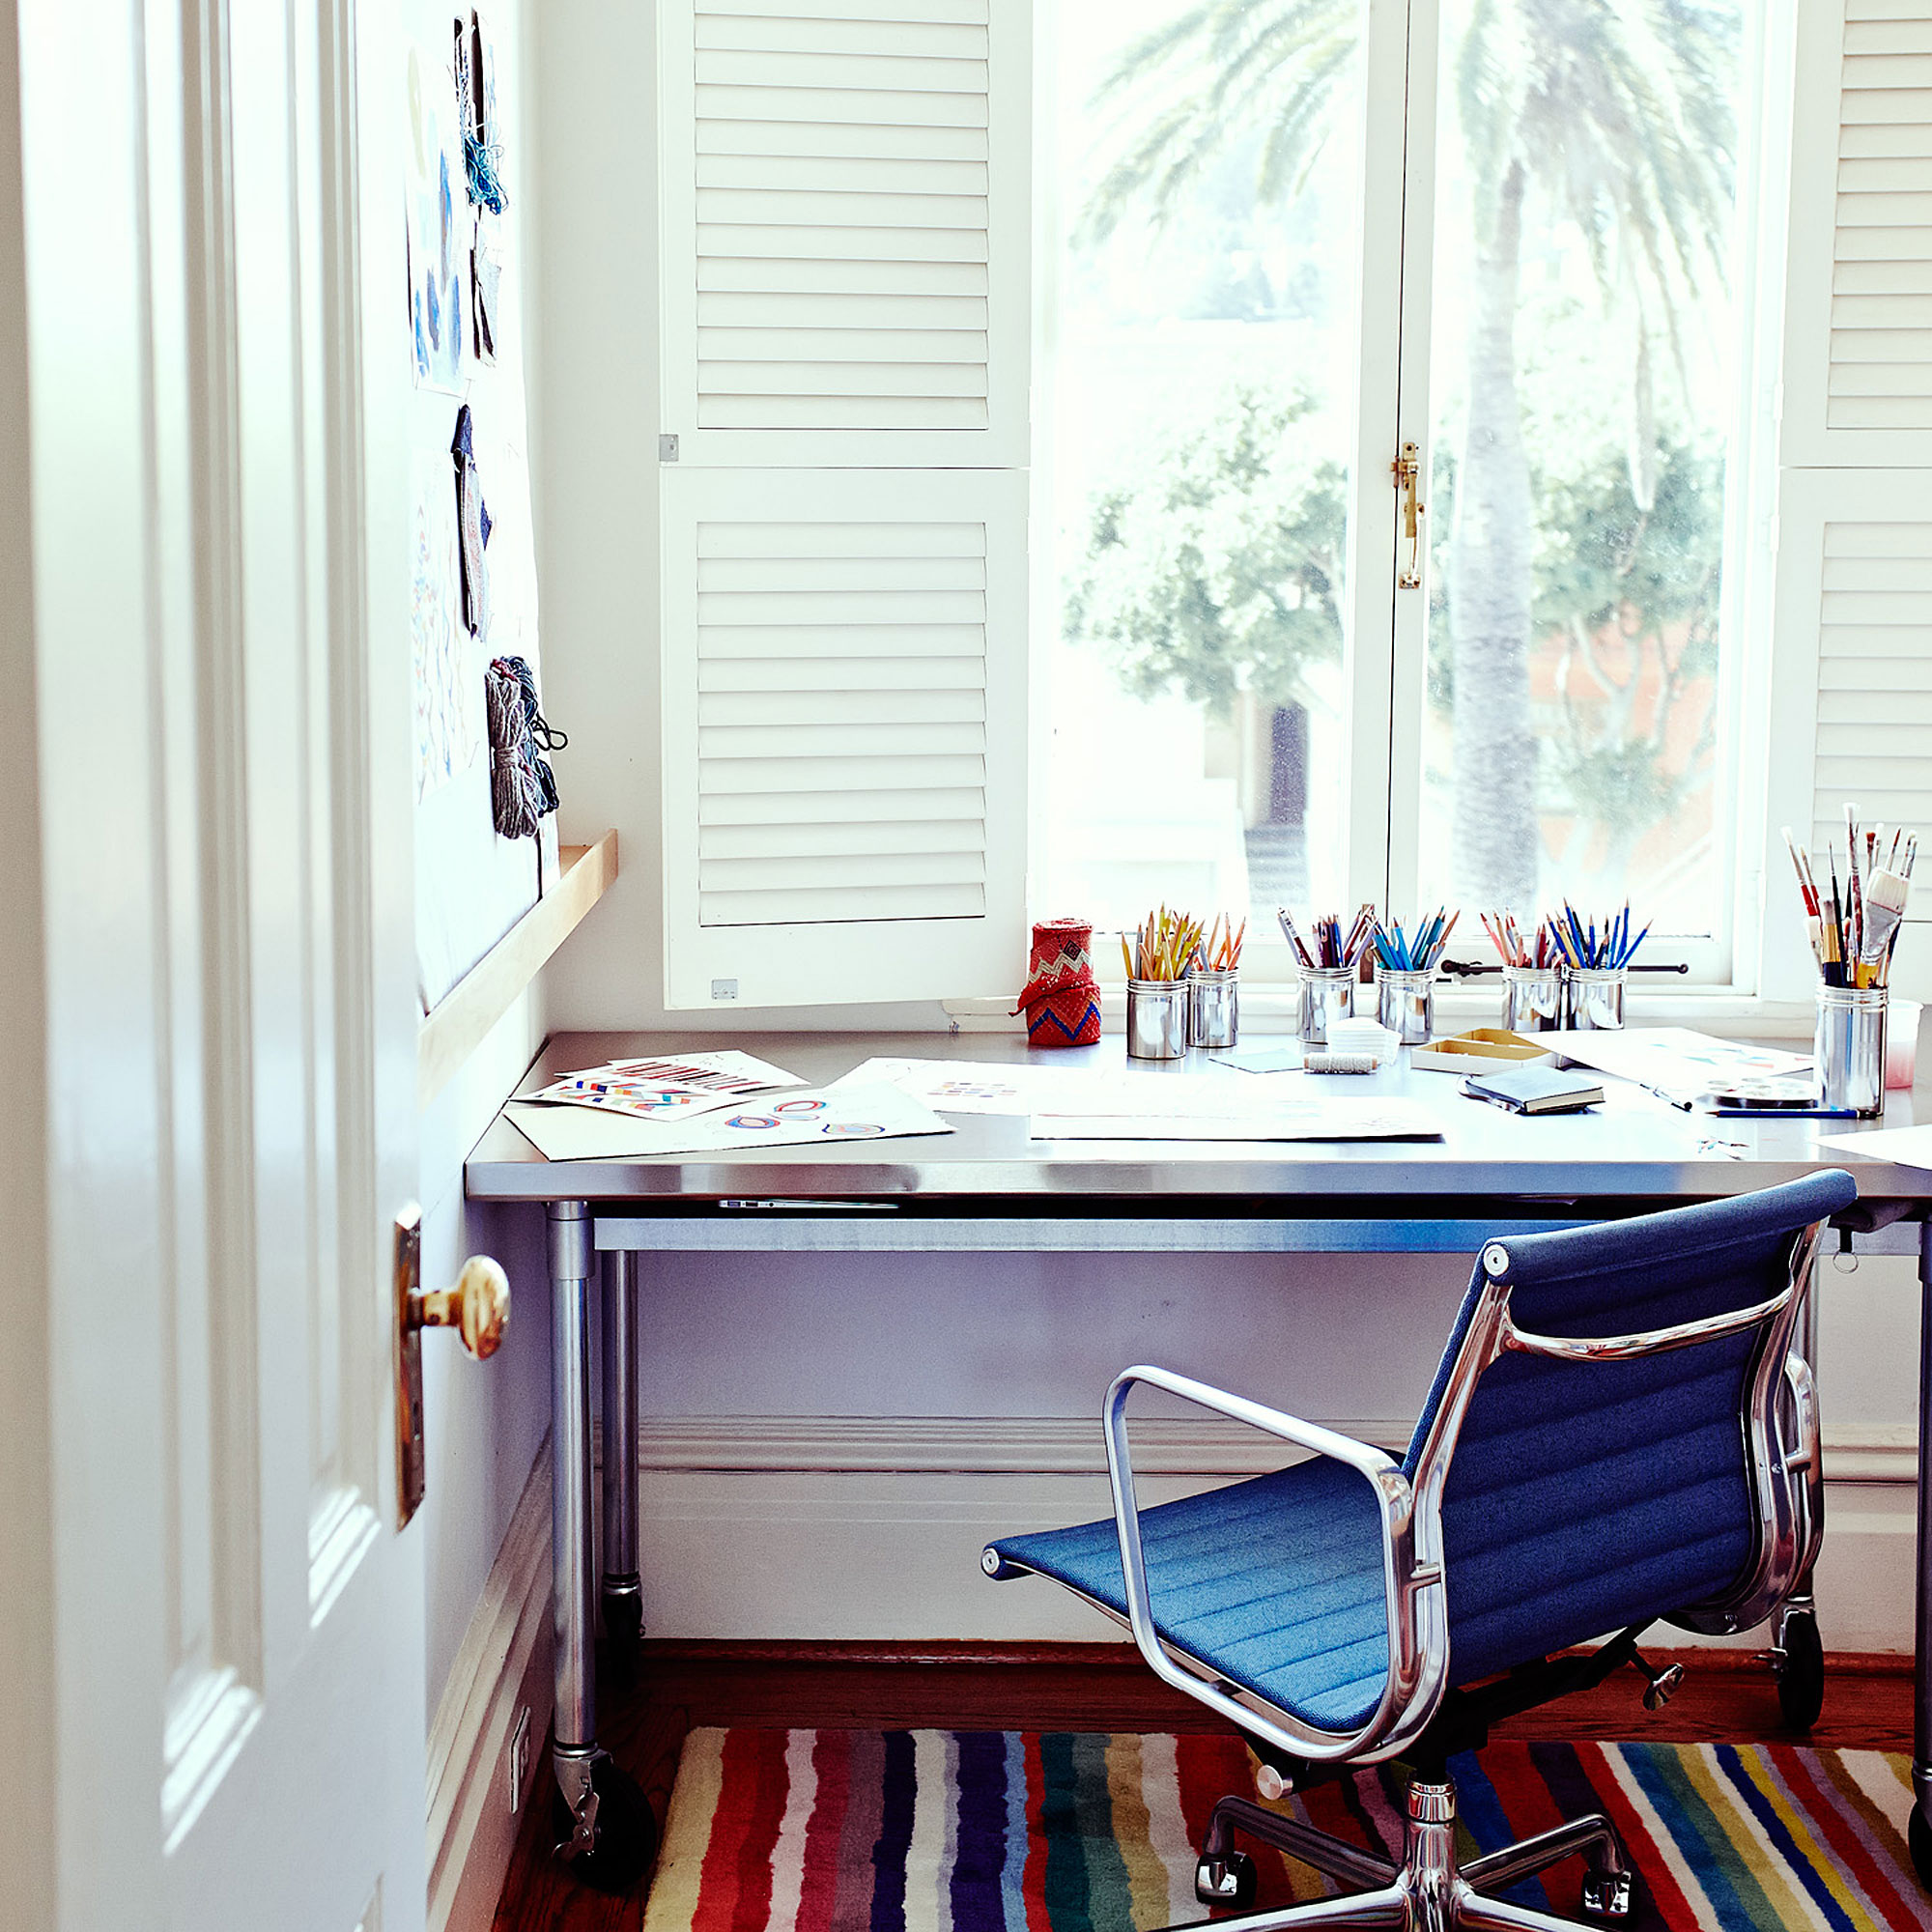 Easy tips for decluttering your work space - Sunset Magazine